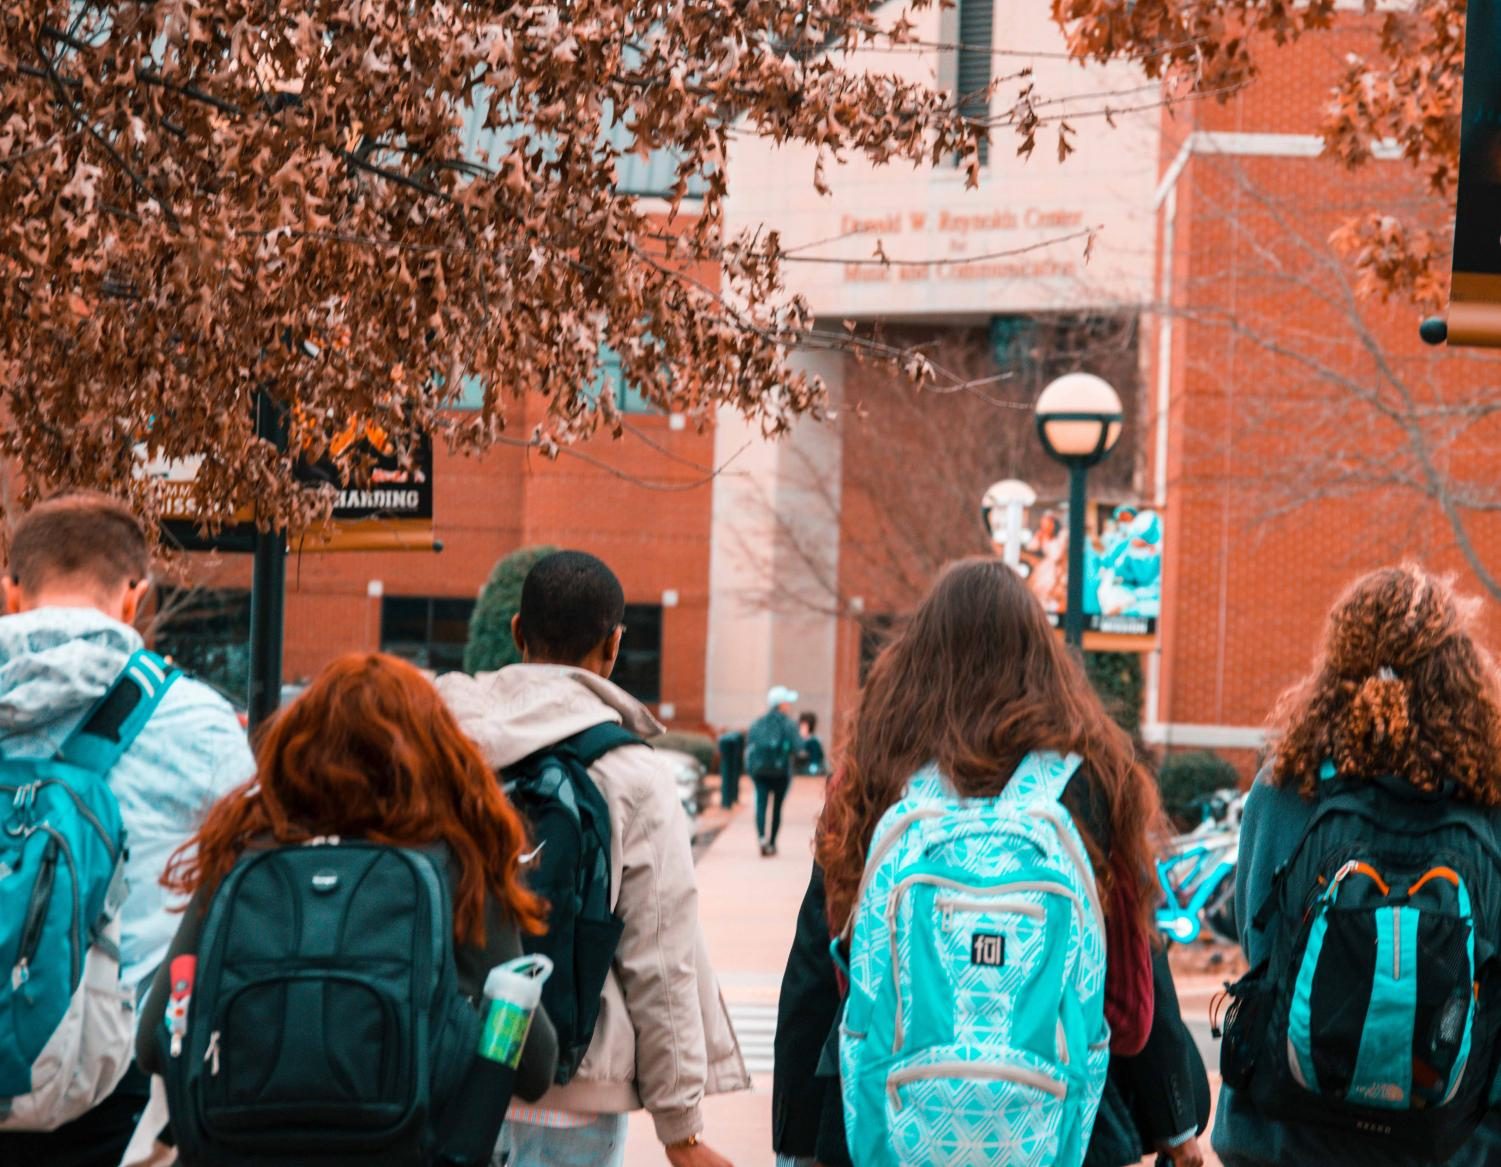 Enrollment at UNI declined by 695 students this year compared to last.